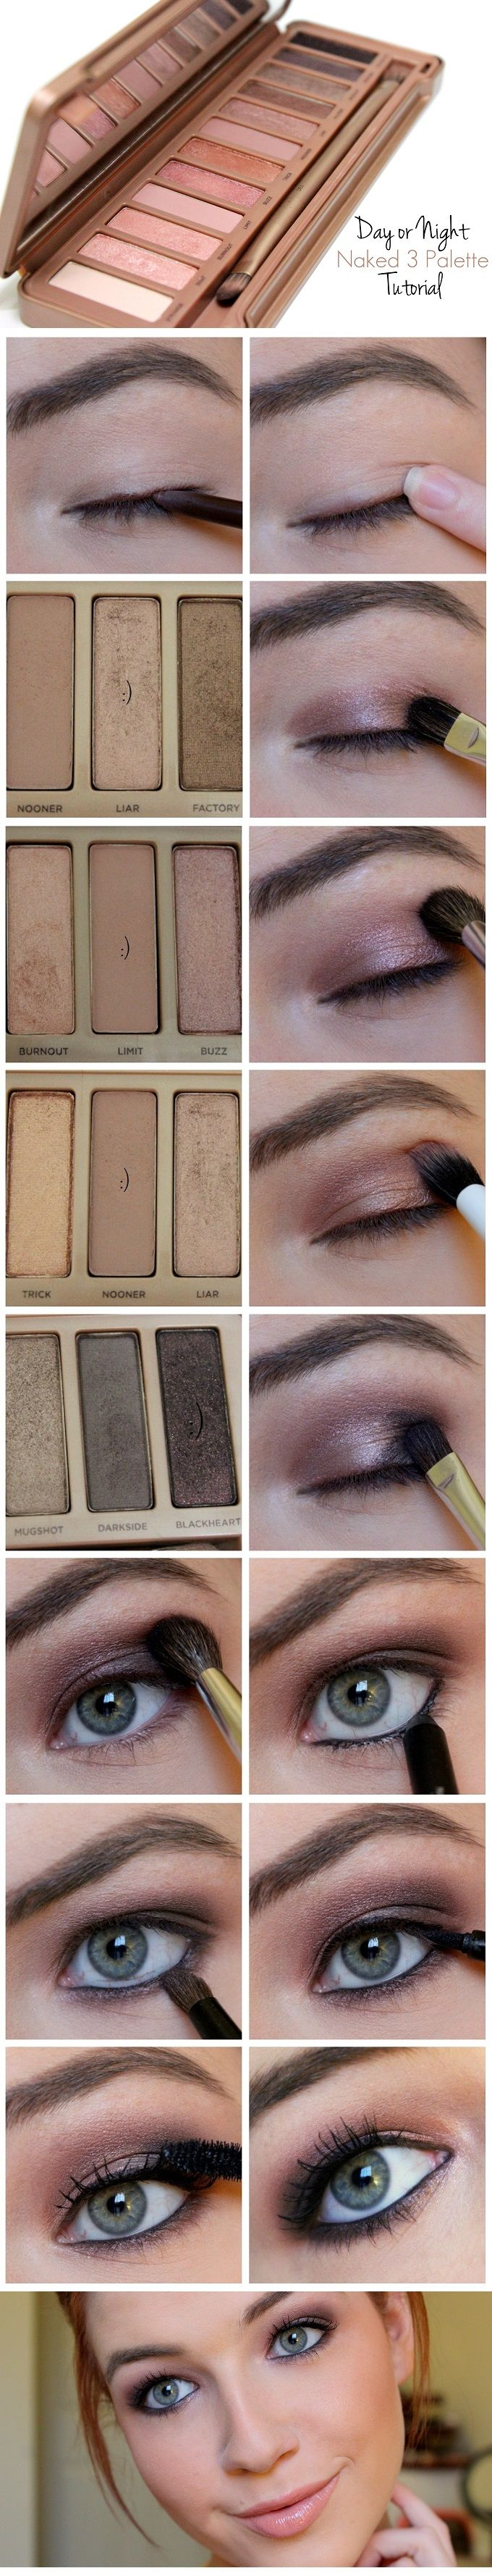 Naked 3 Palette: Easy Day or Night Smokey Eye | www.loveshelbey.com | #naked3 #nakedpalette #naked3palette